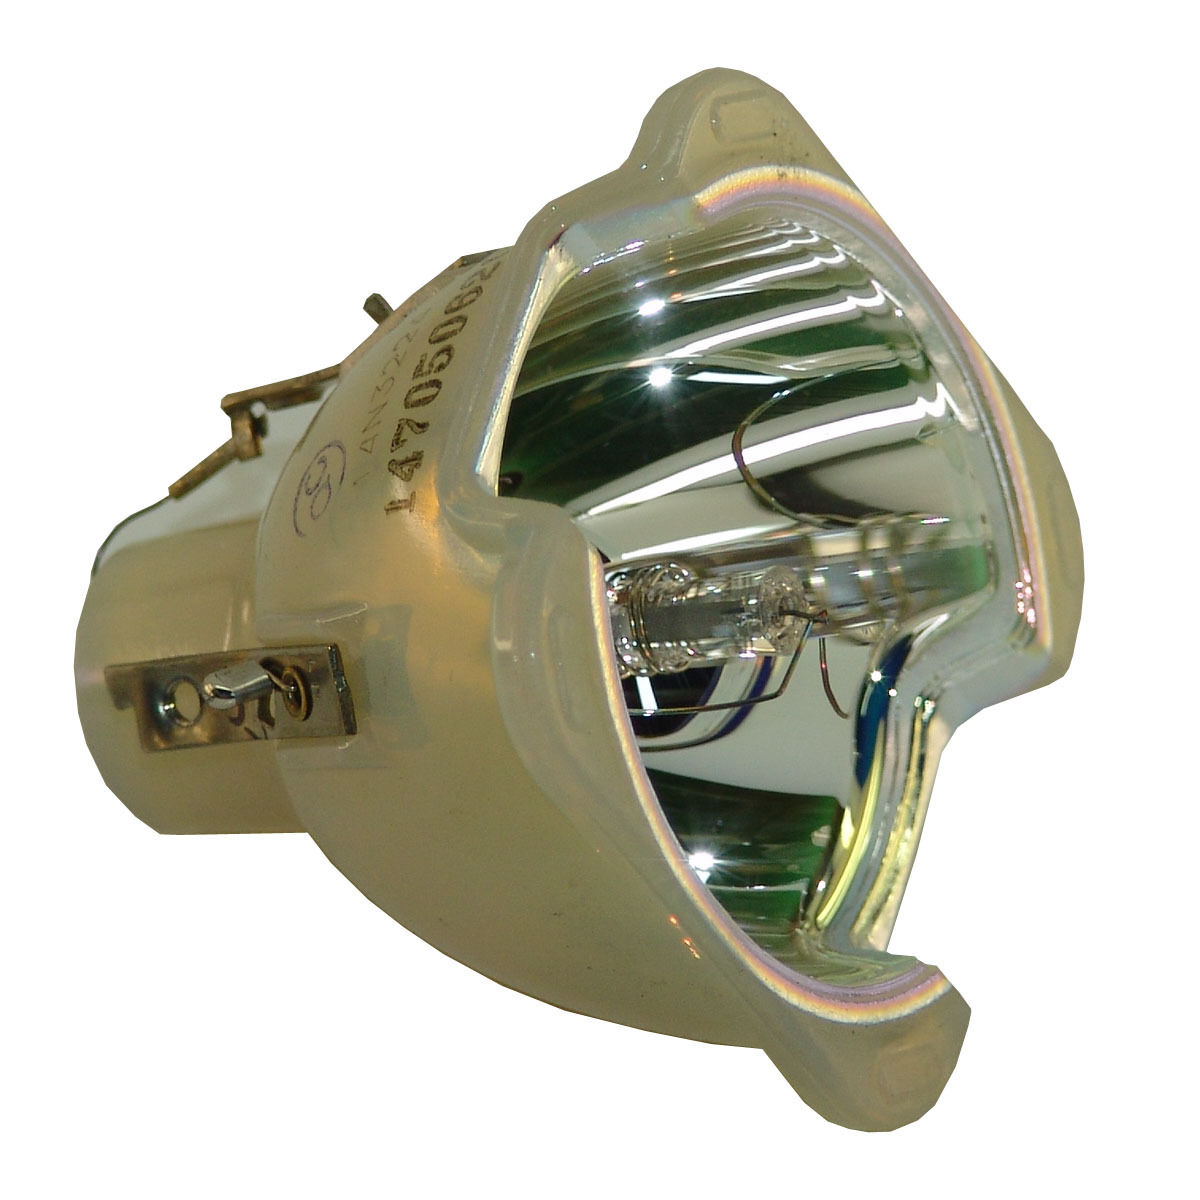 Compatible Bare Bulb SP-LAMP-032 for Infocus IN81 IN82 IN83 M82 X10 IN80 Projector Lamp Bulb Without housing free shipping free shipping replacement projector bare bulb sp lamp 032 for infocus in81 in82 in83 m82 x10 in80 projector